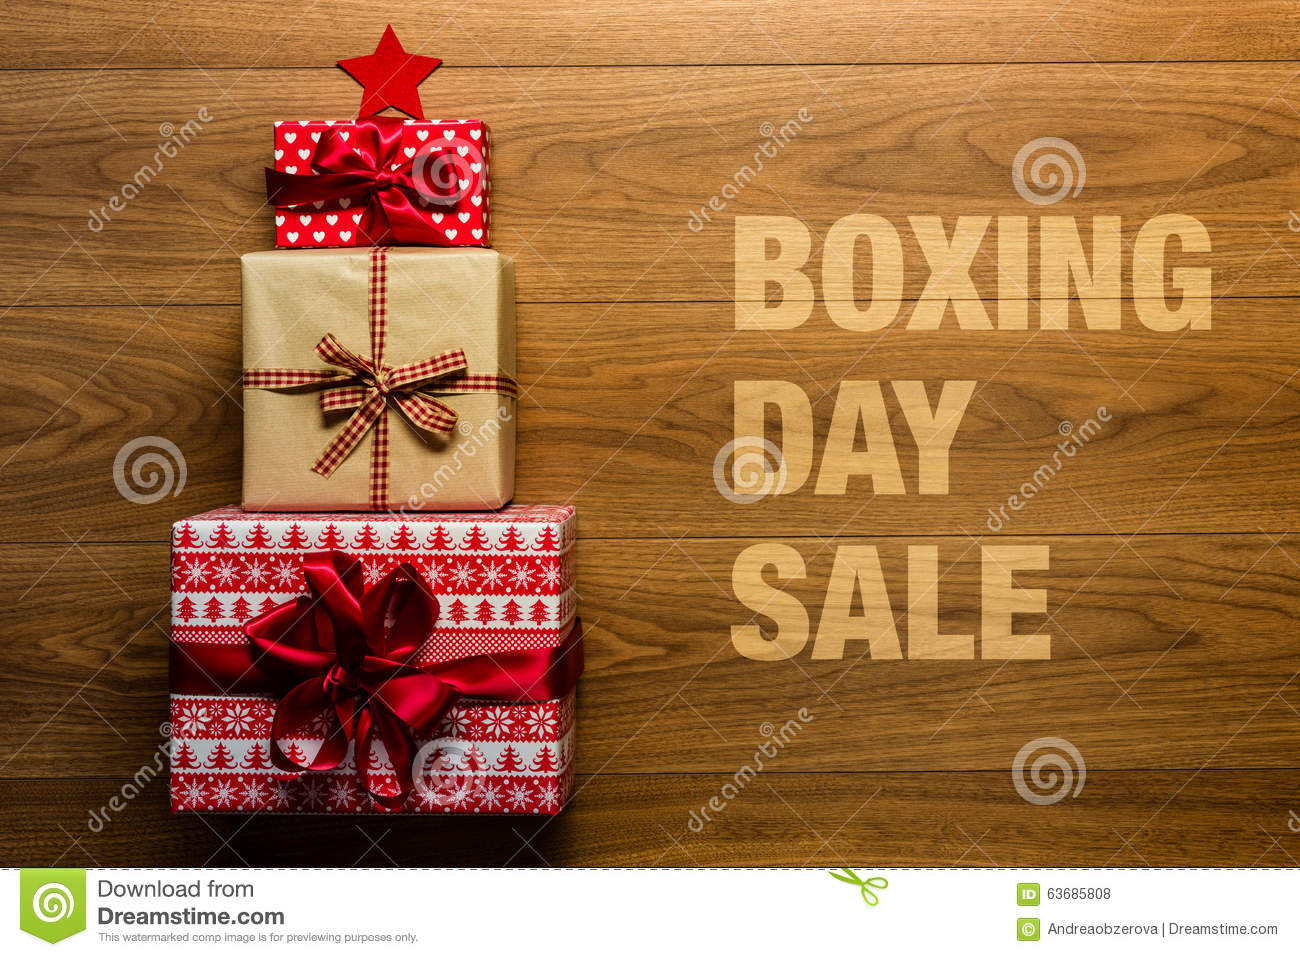 Boxing Day Sale Concept On Wooden Background, Stock Photo